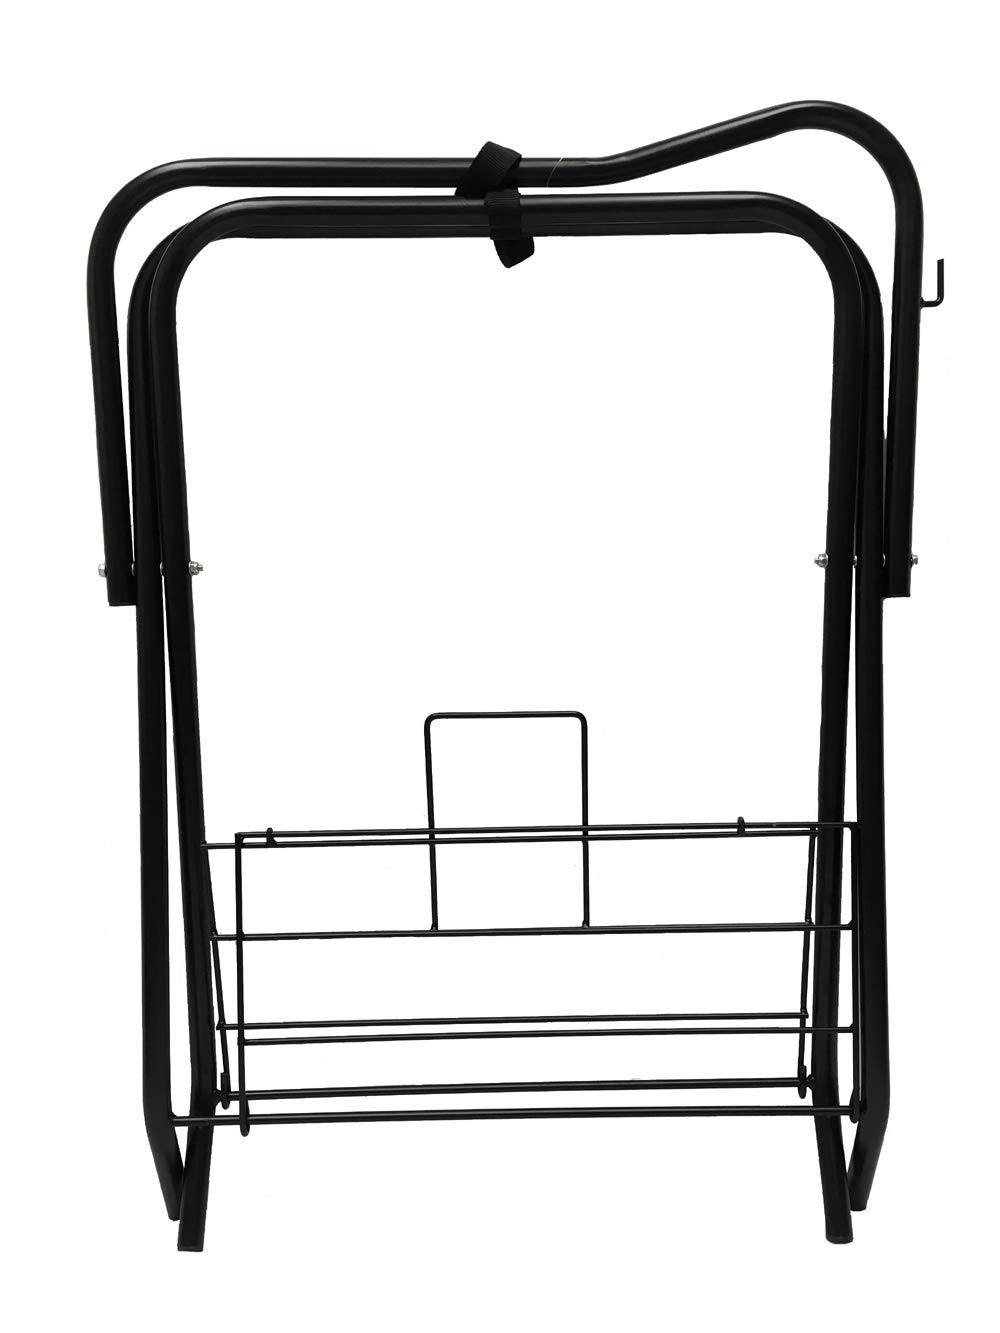 Horse Saddle Rack Stand Folding Storage Metal Black Saddle Tack Stable by AJ Tack Wholesale